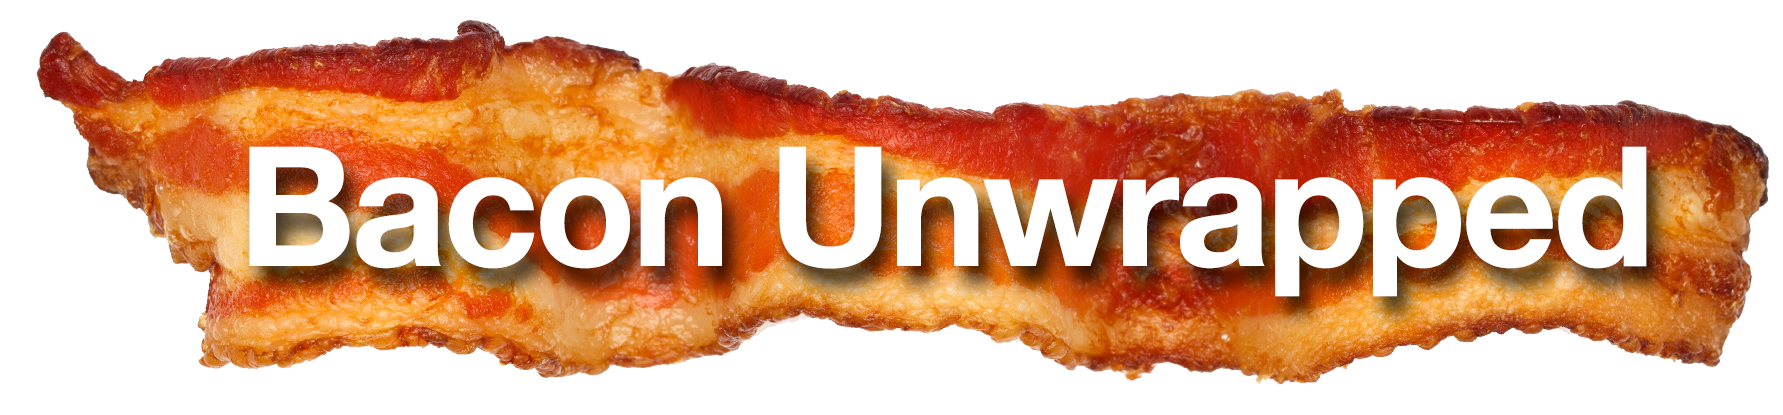 Bacon Unwrapped